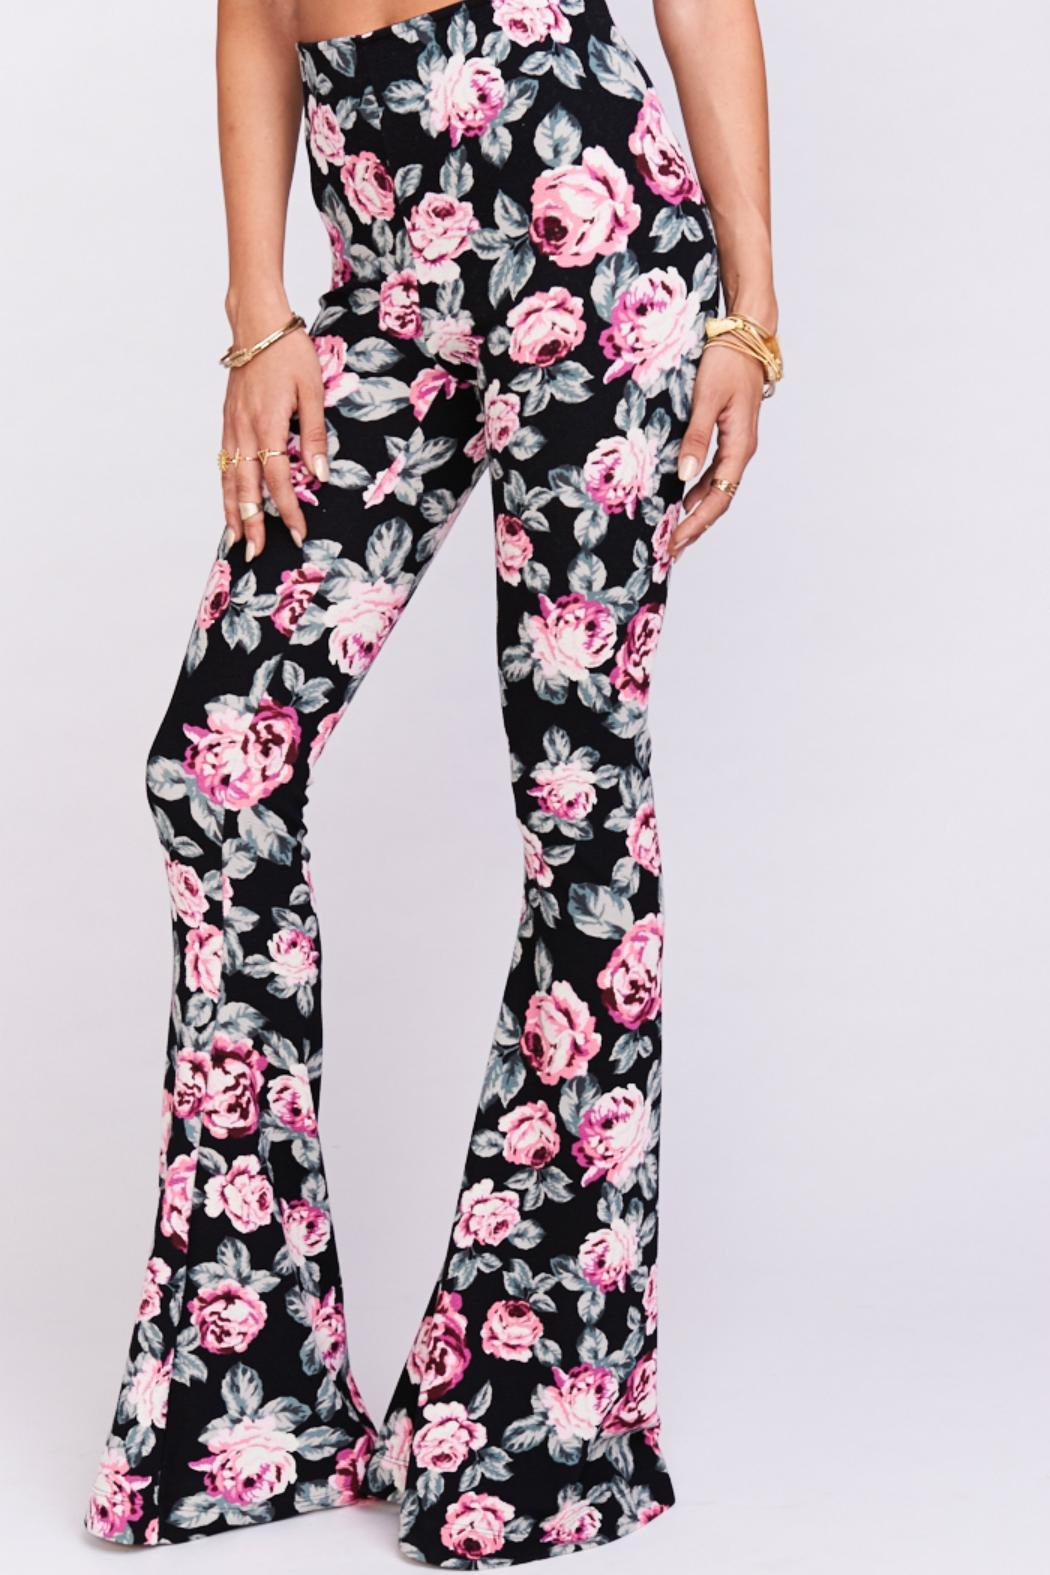 Show Me Your Mumu Floral Flare Pants From Dallas By Hulla Blu